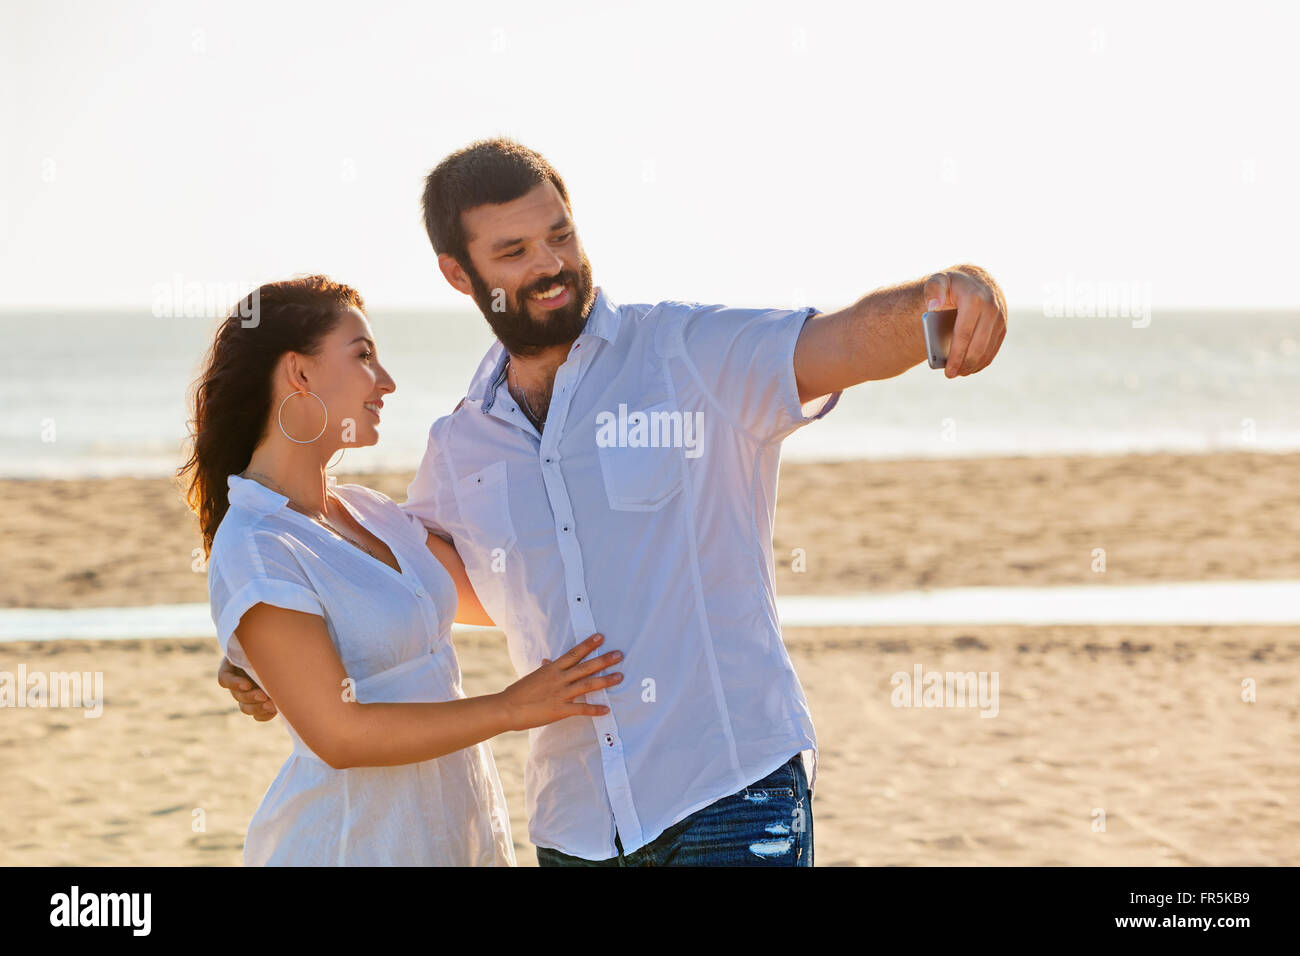 Happy family on honeymoon holidays - just married loving couple have fun and taking selfie for social network on - Stock Image